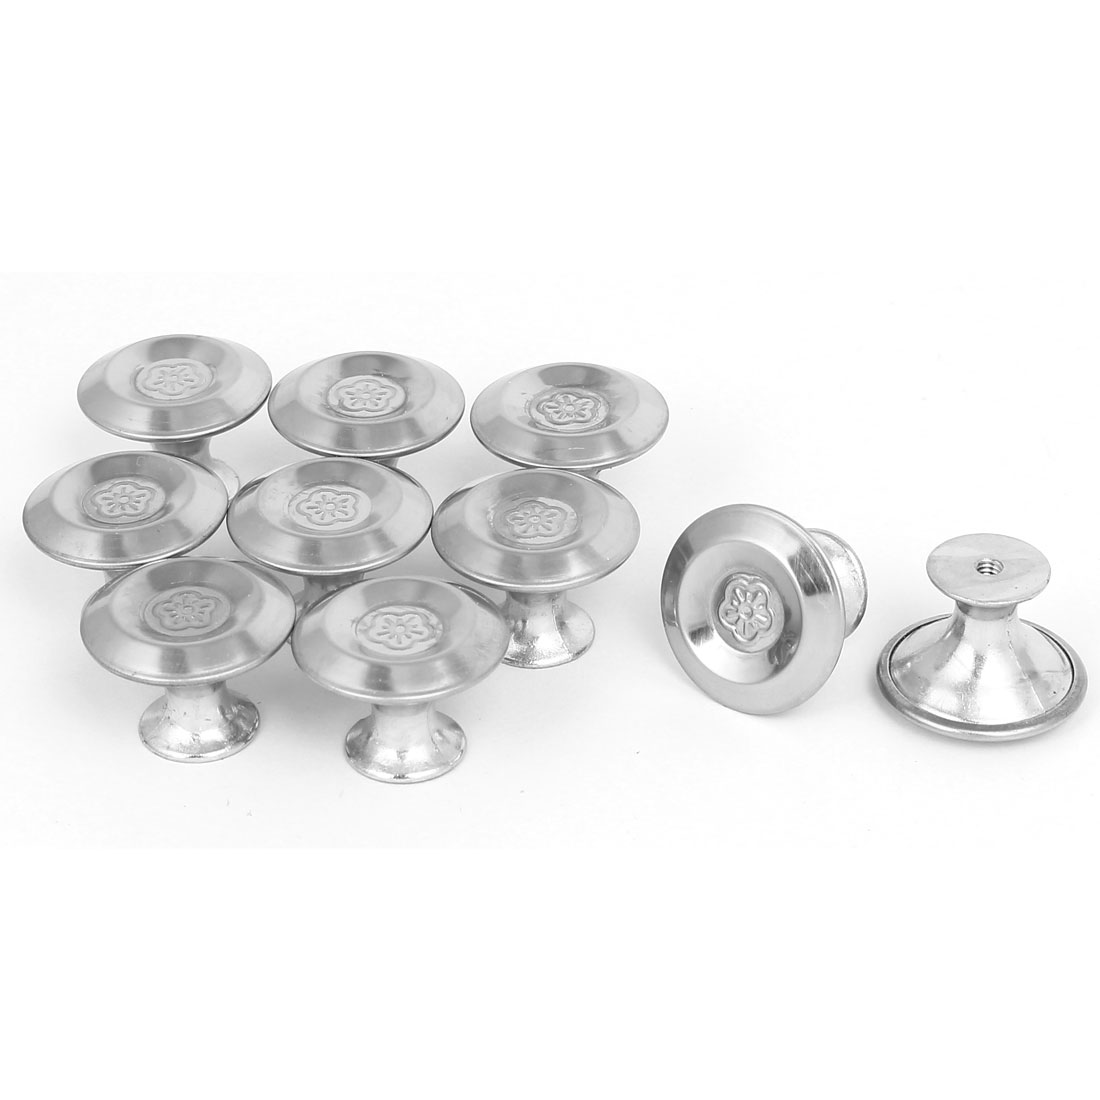 Cabinet Drawer Metal Single Hole Flower Pattern Pull Knobs 27.5mmx20mm 10pcs